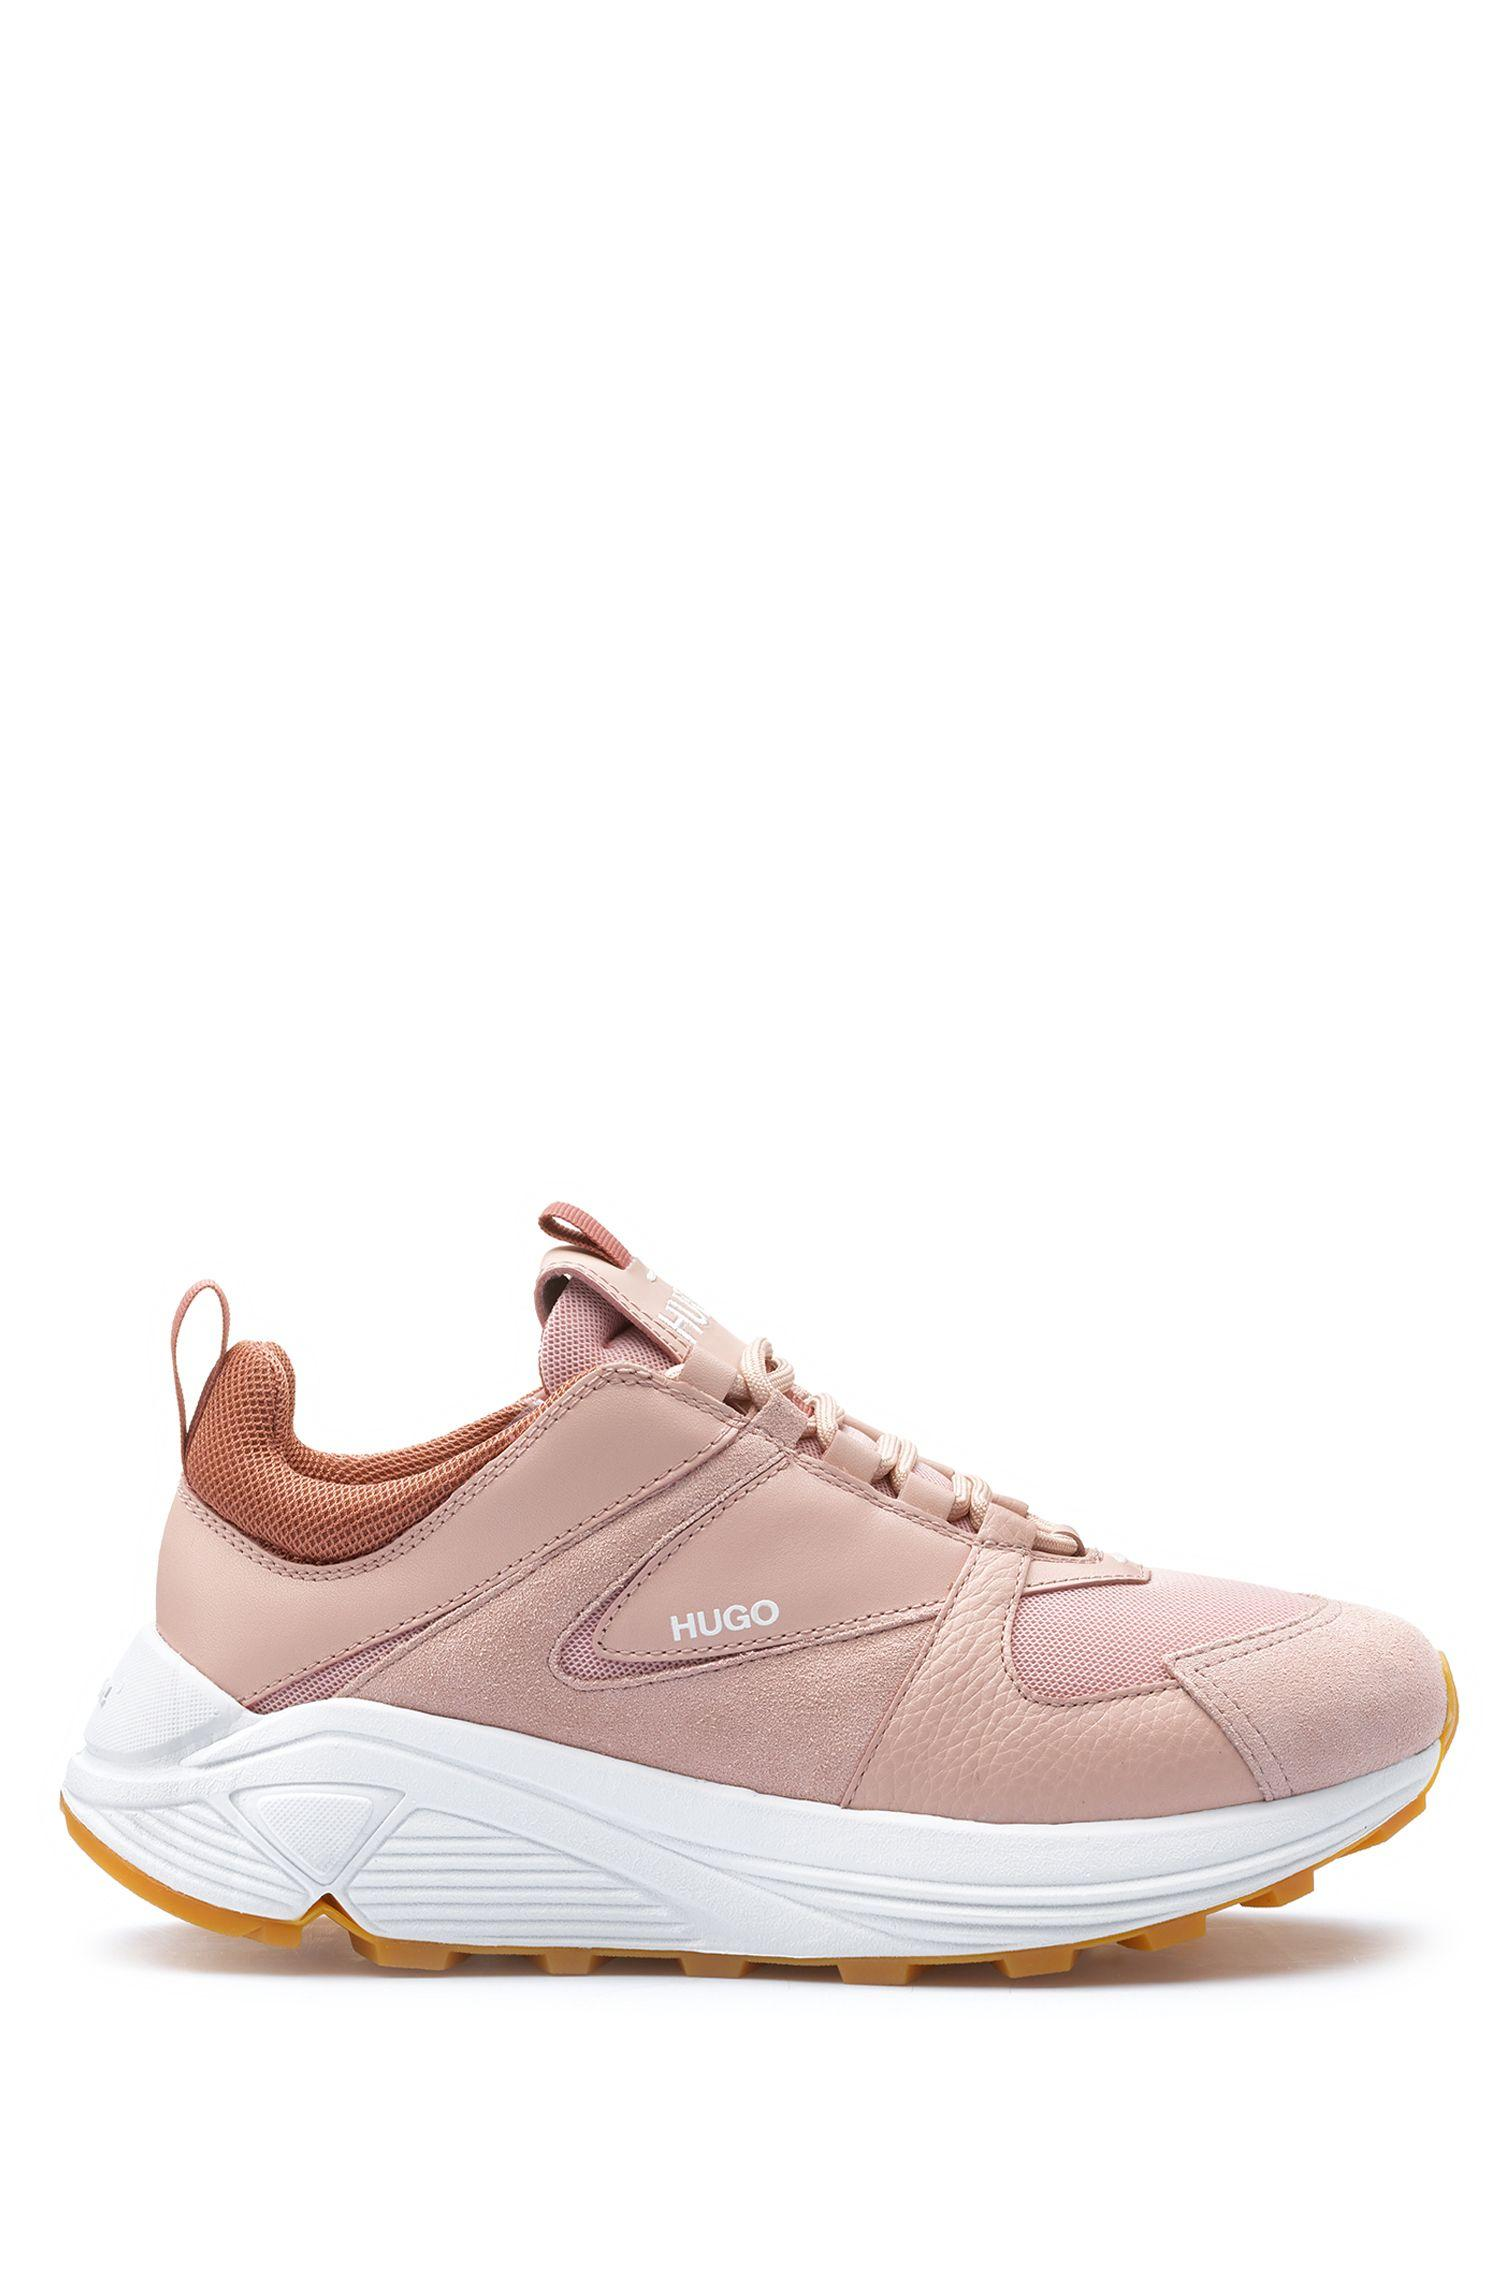 7f5efe8b56a HUGO - Pink Chunky Running-style Trainers In Mesh